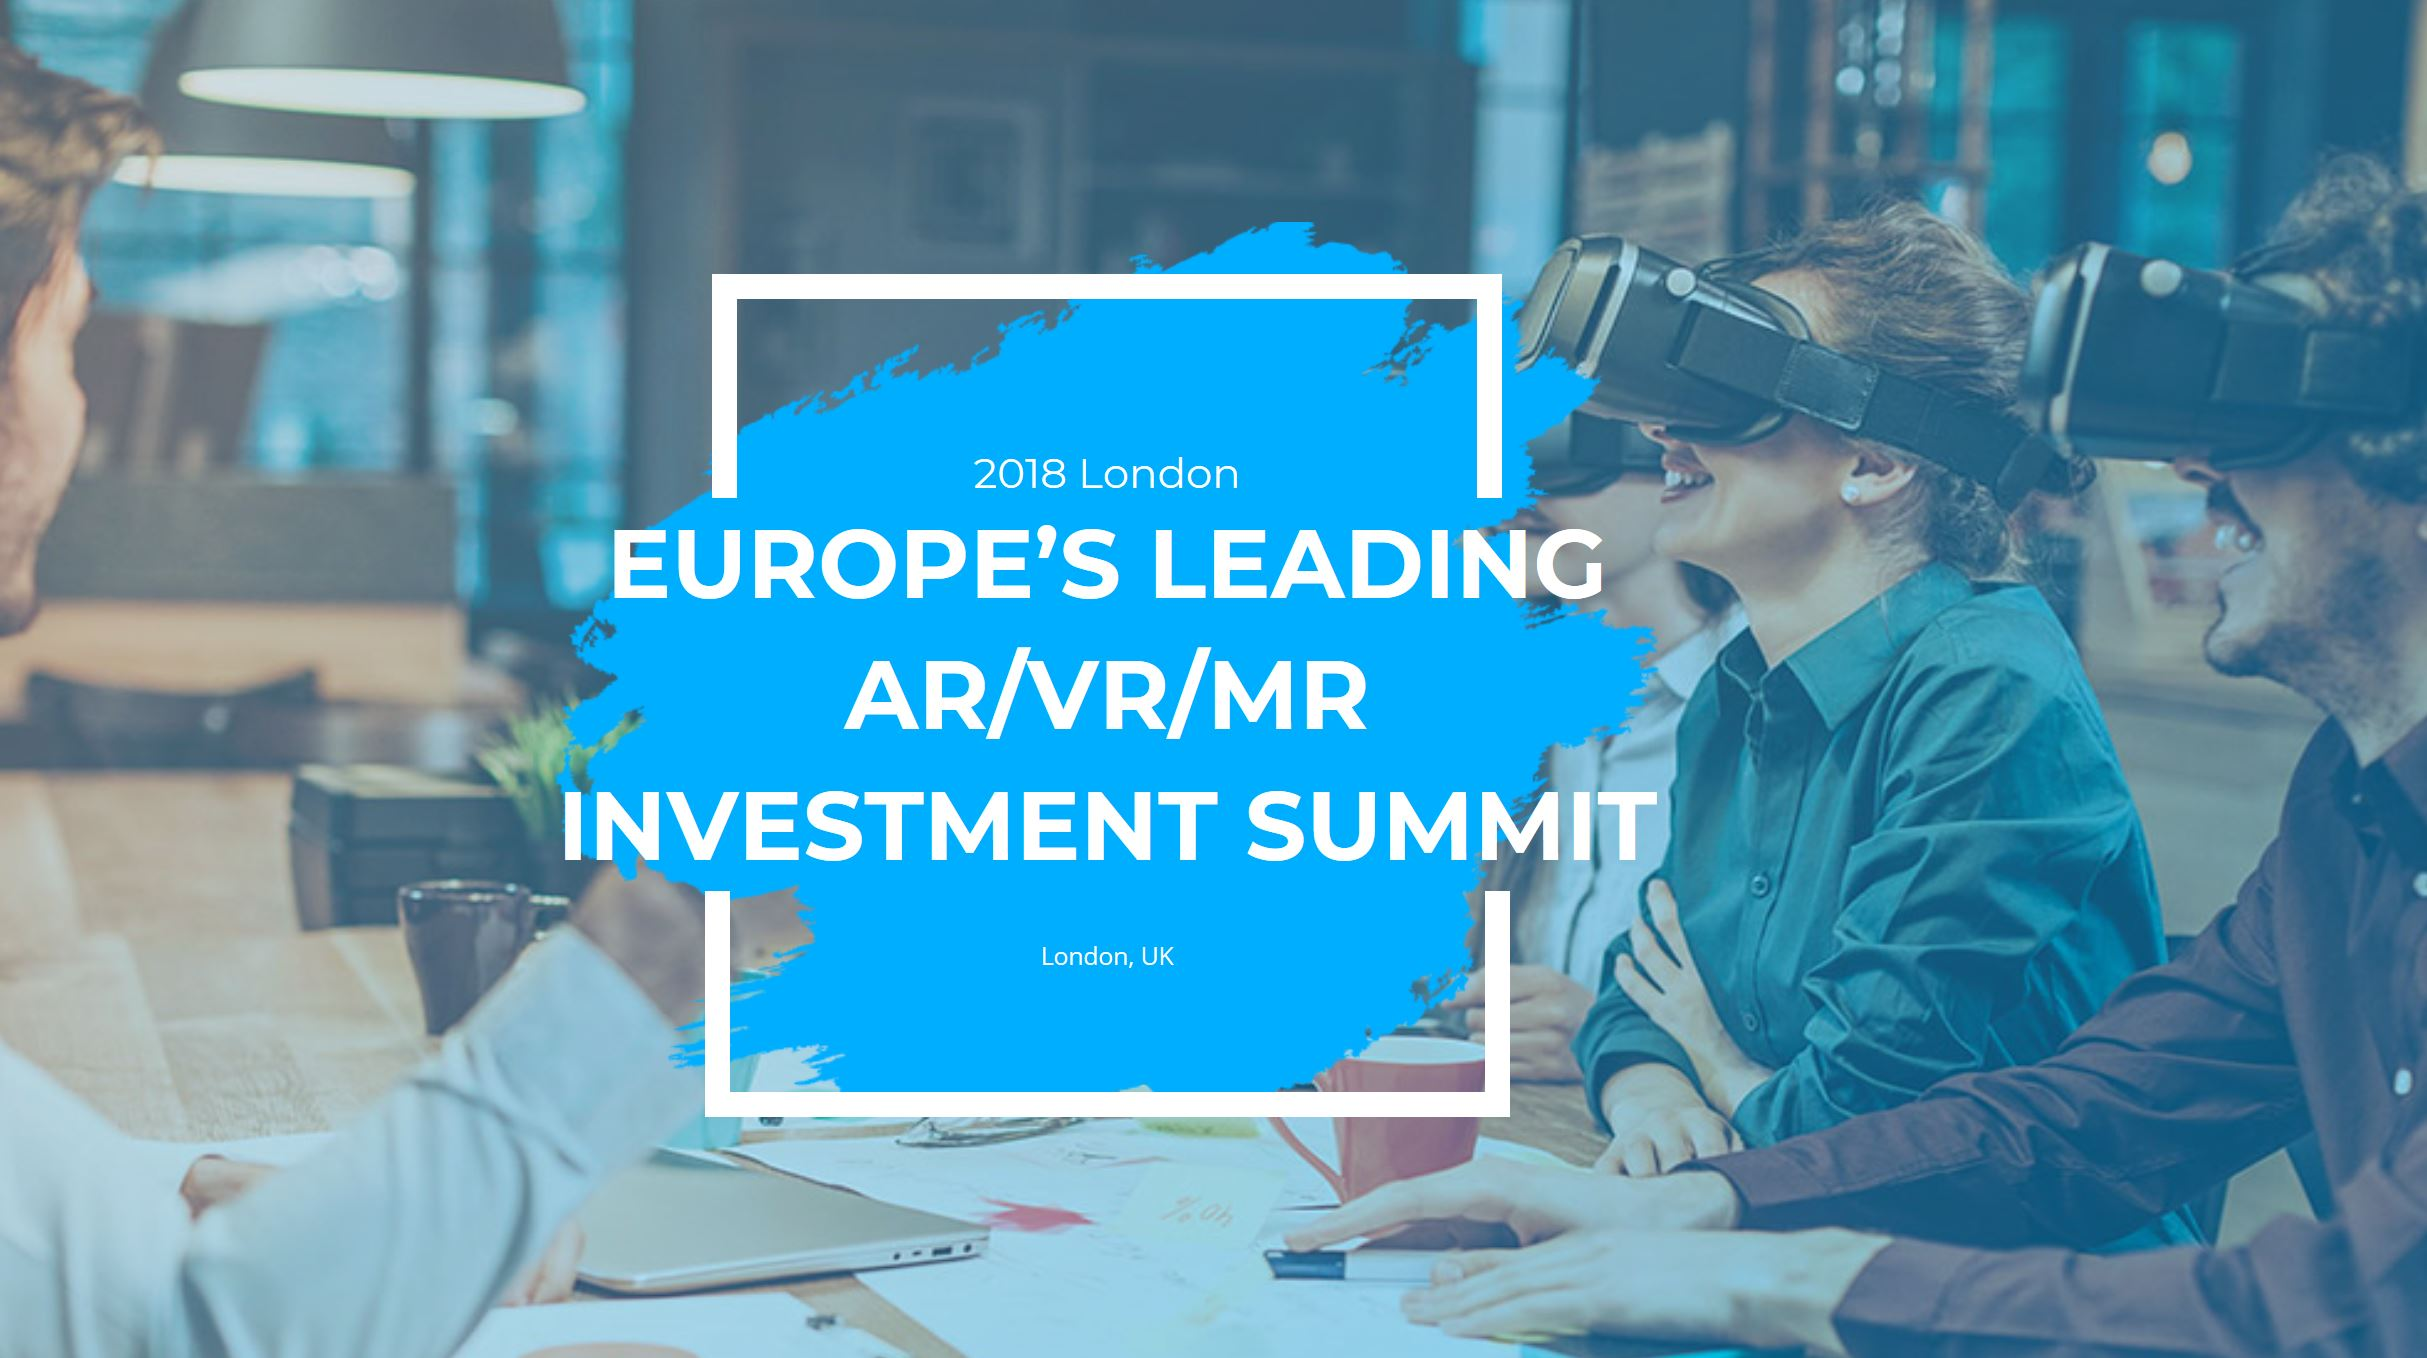 AR/VR/MR  Investment Summit